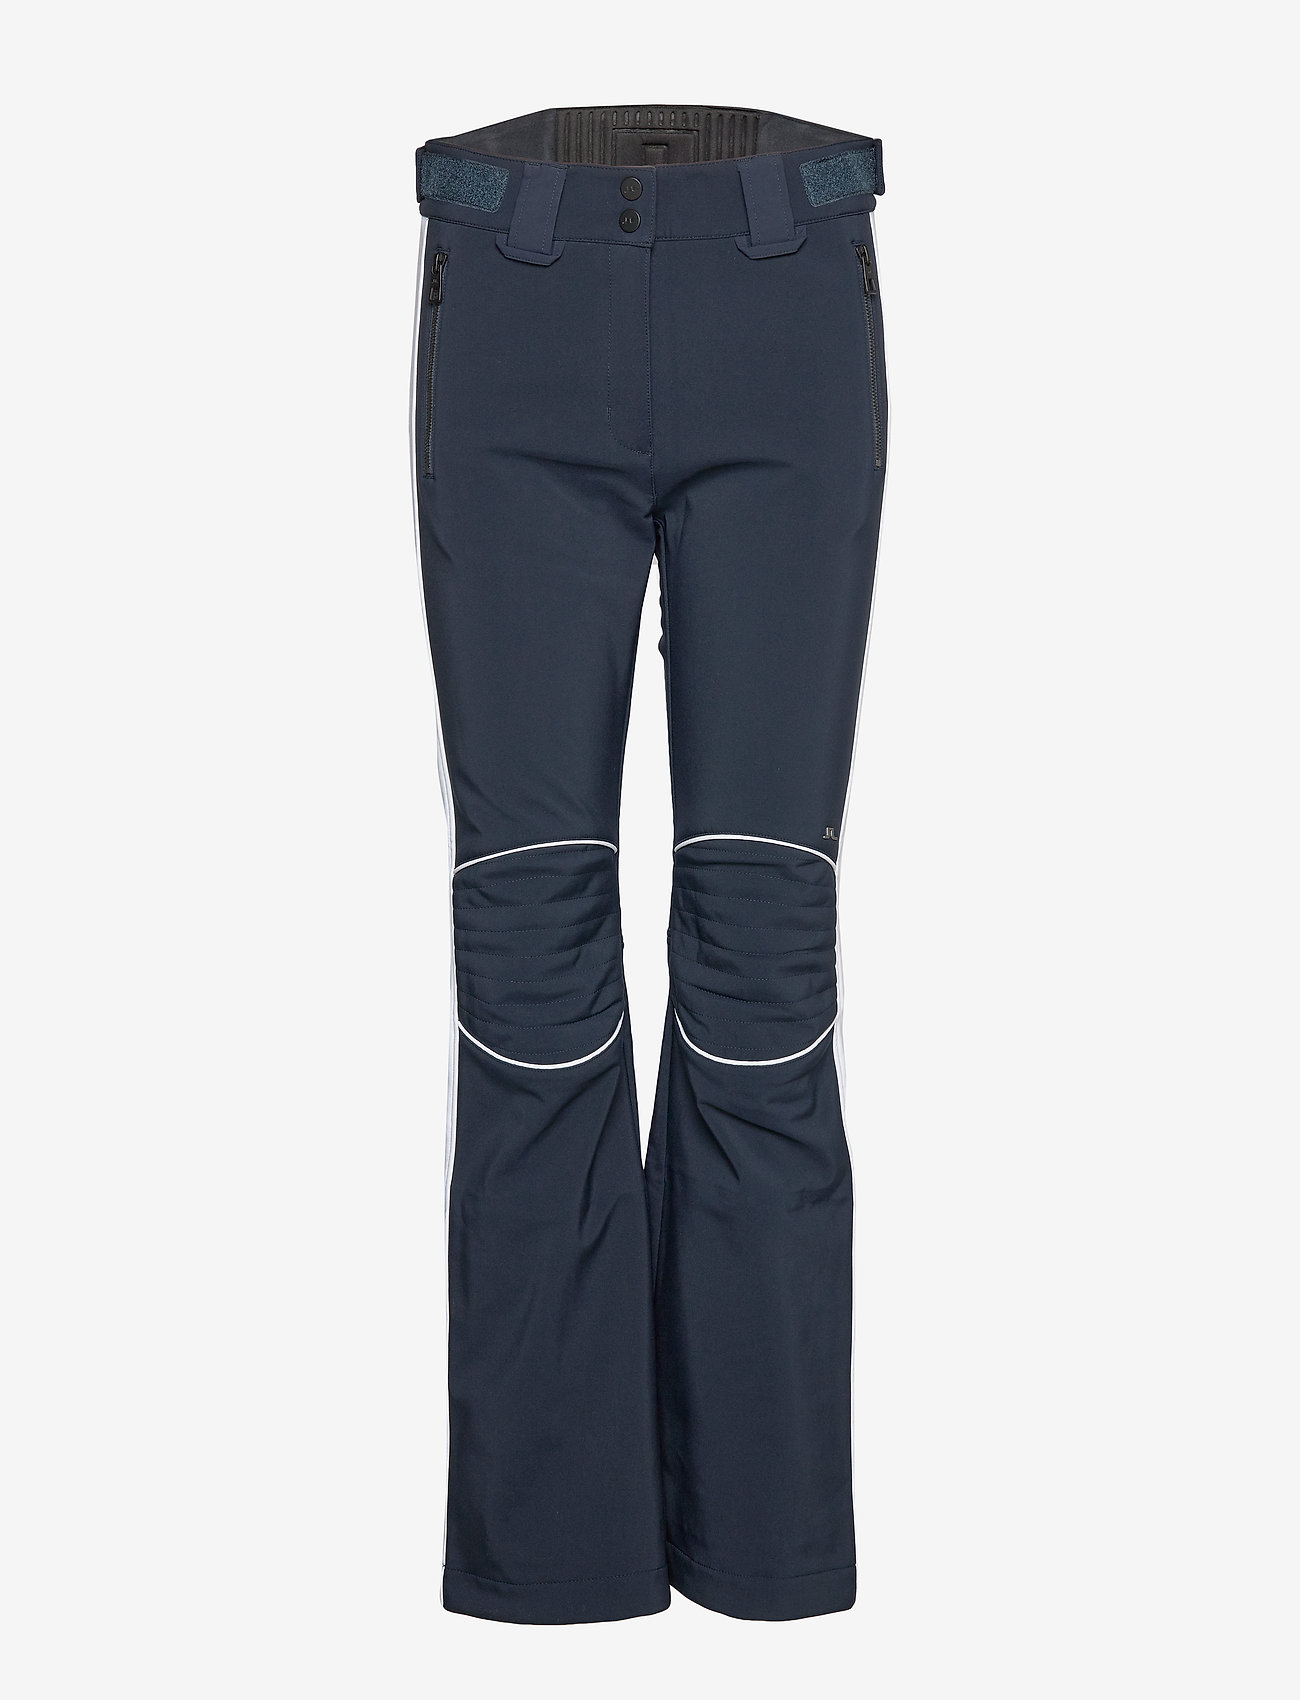 J. Lindeberg Ski - W Stanford Striped Pts-JL Soft - skiing pants - jl navy - 0